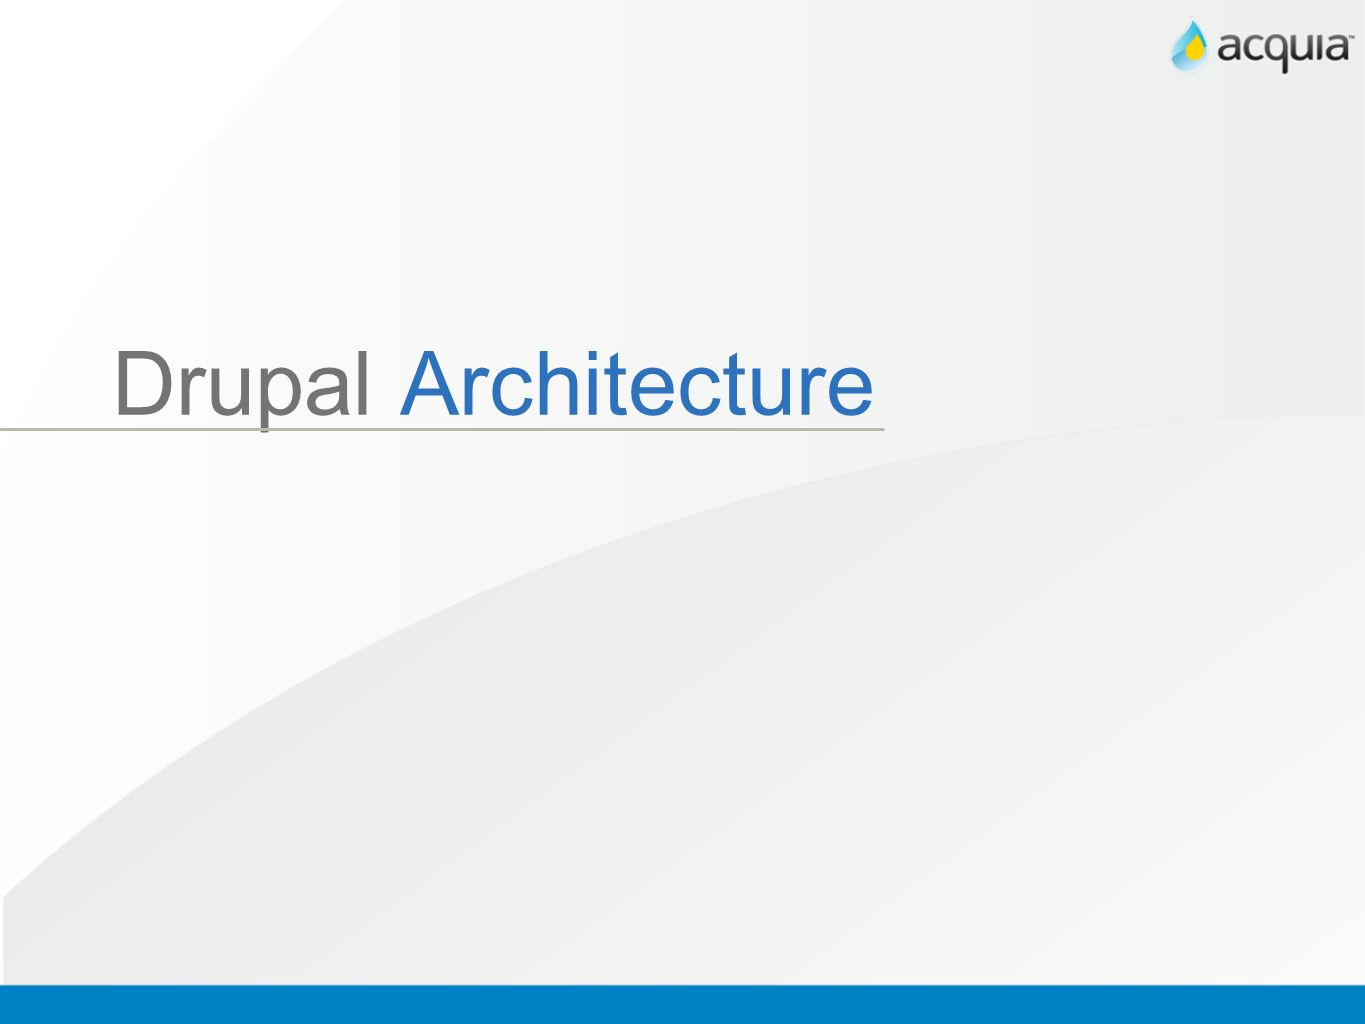 Drupal Architecture key additional information about OO and Drupal: http://drupal.org/node/547518